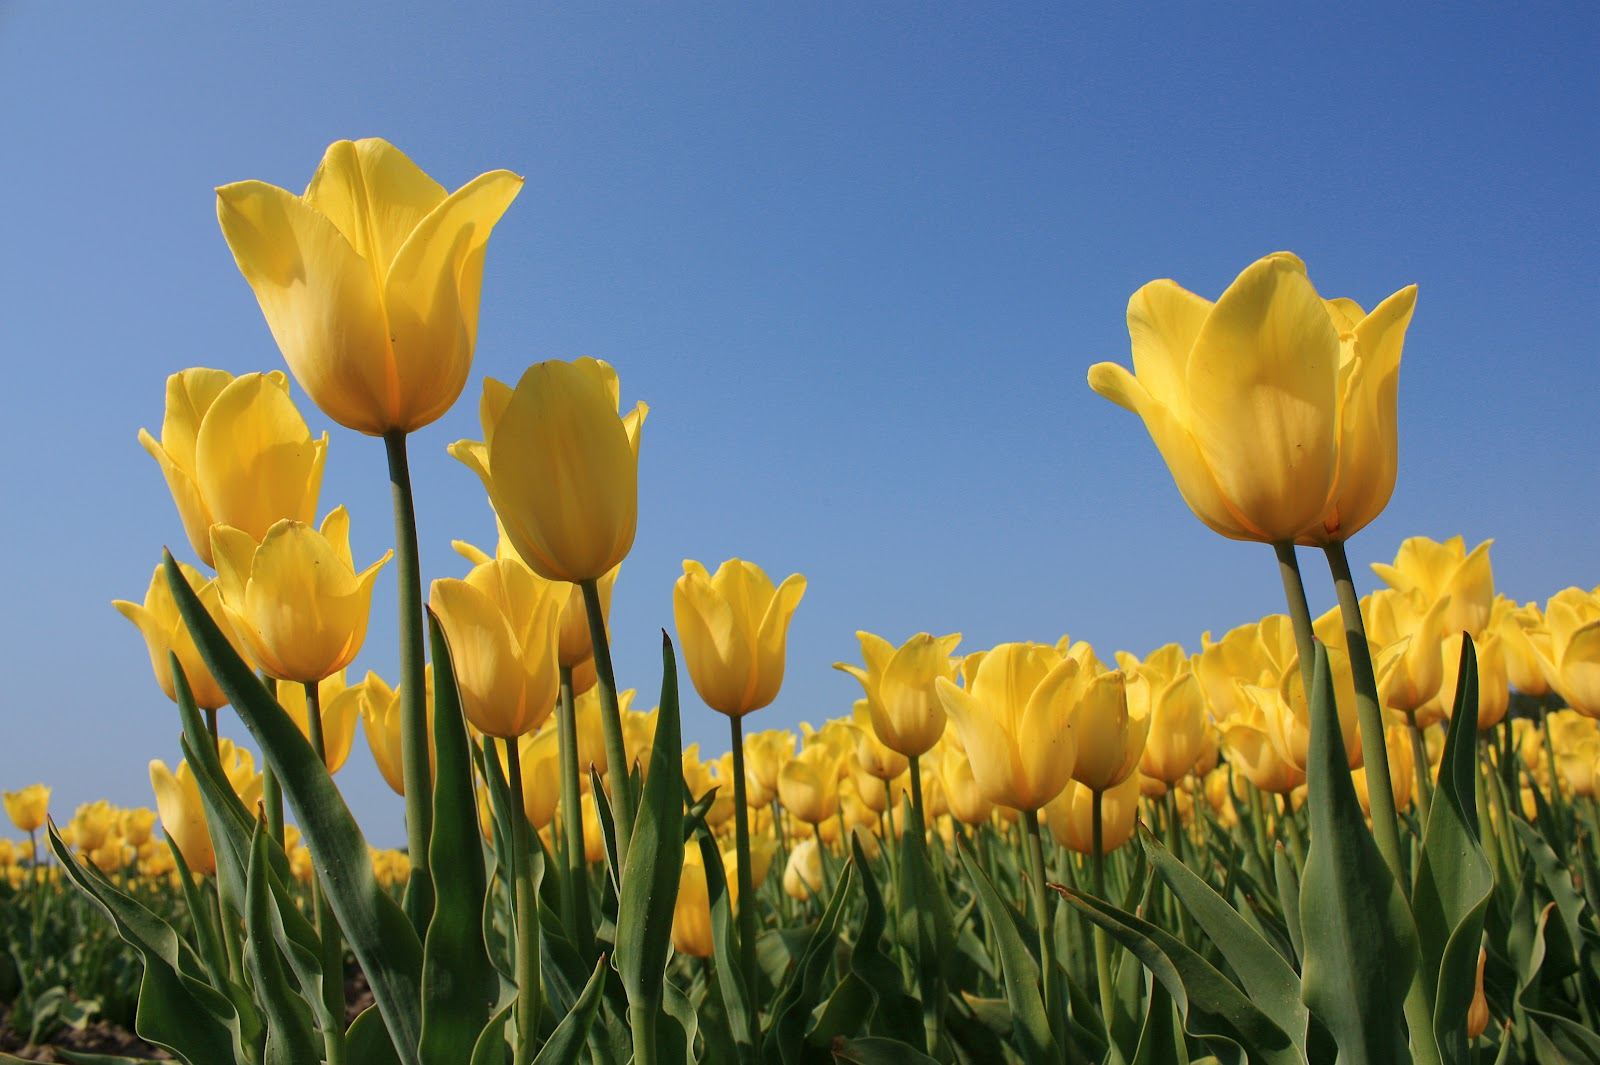 Cute Godly Wallpapers Skagit Valley Tulip Festival Tulips Festival Yellow